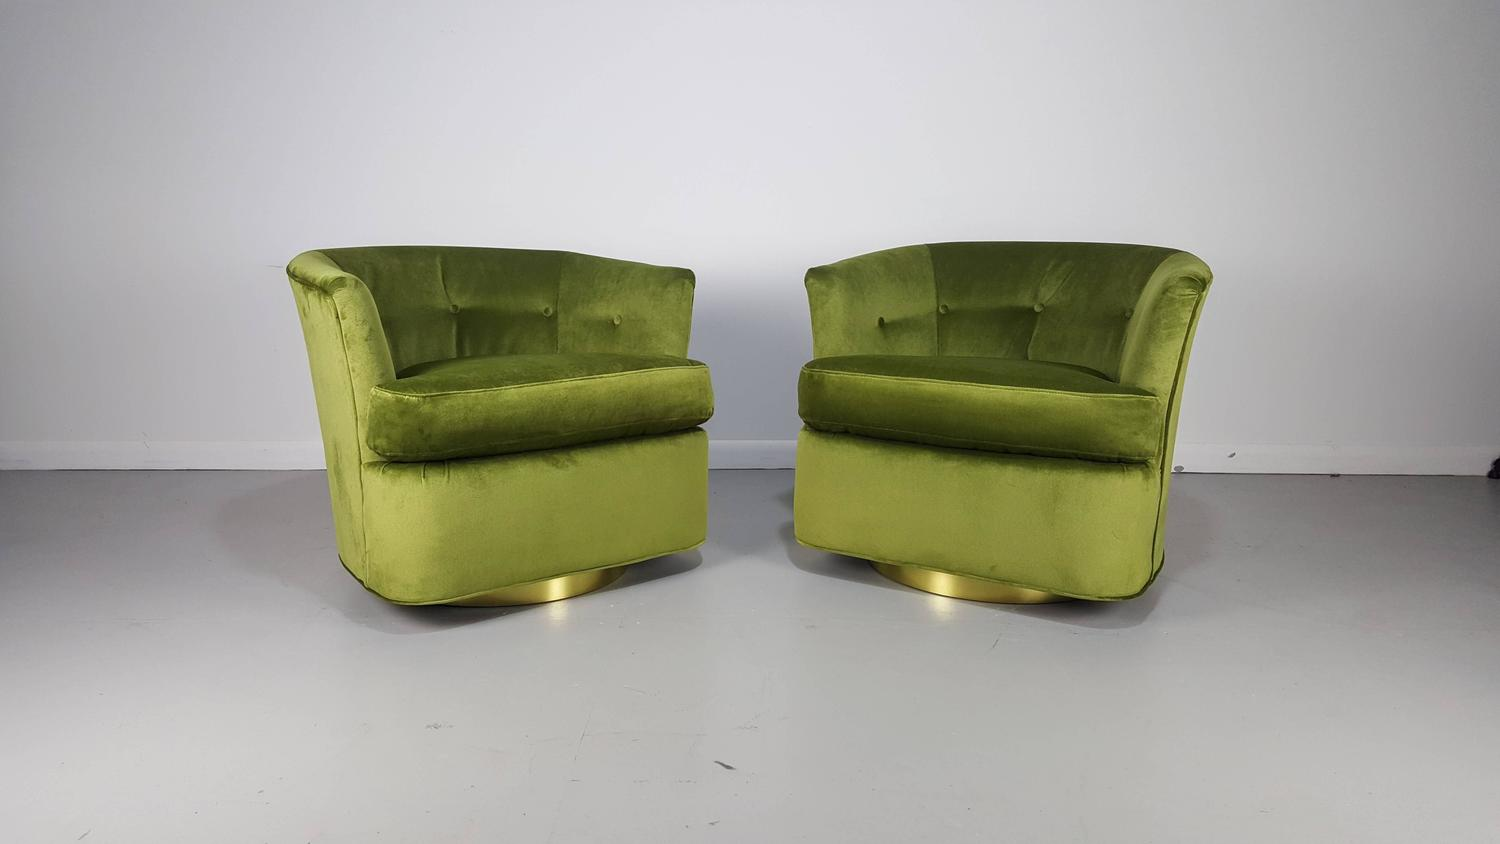 green velvet swivel chair upholstered armless lounge chairs in with polished bronze